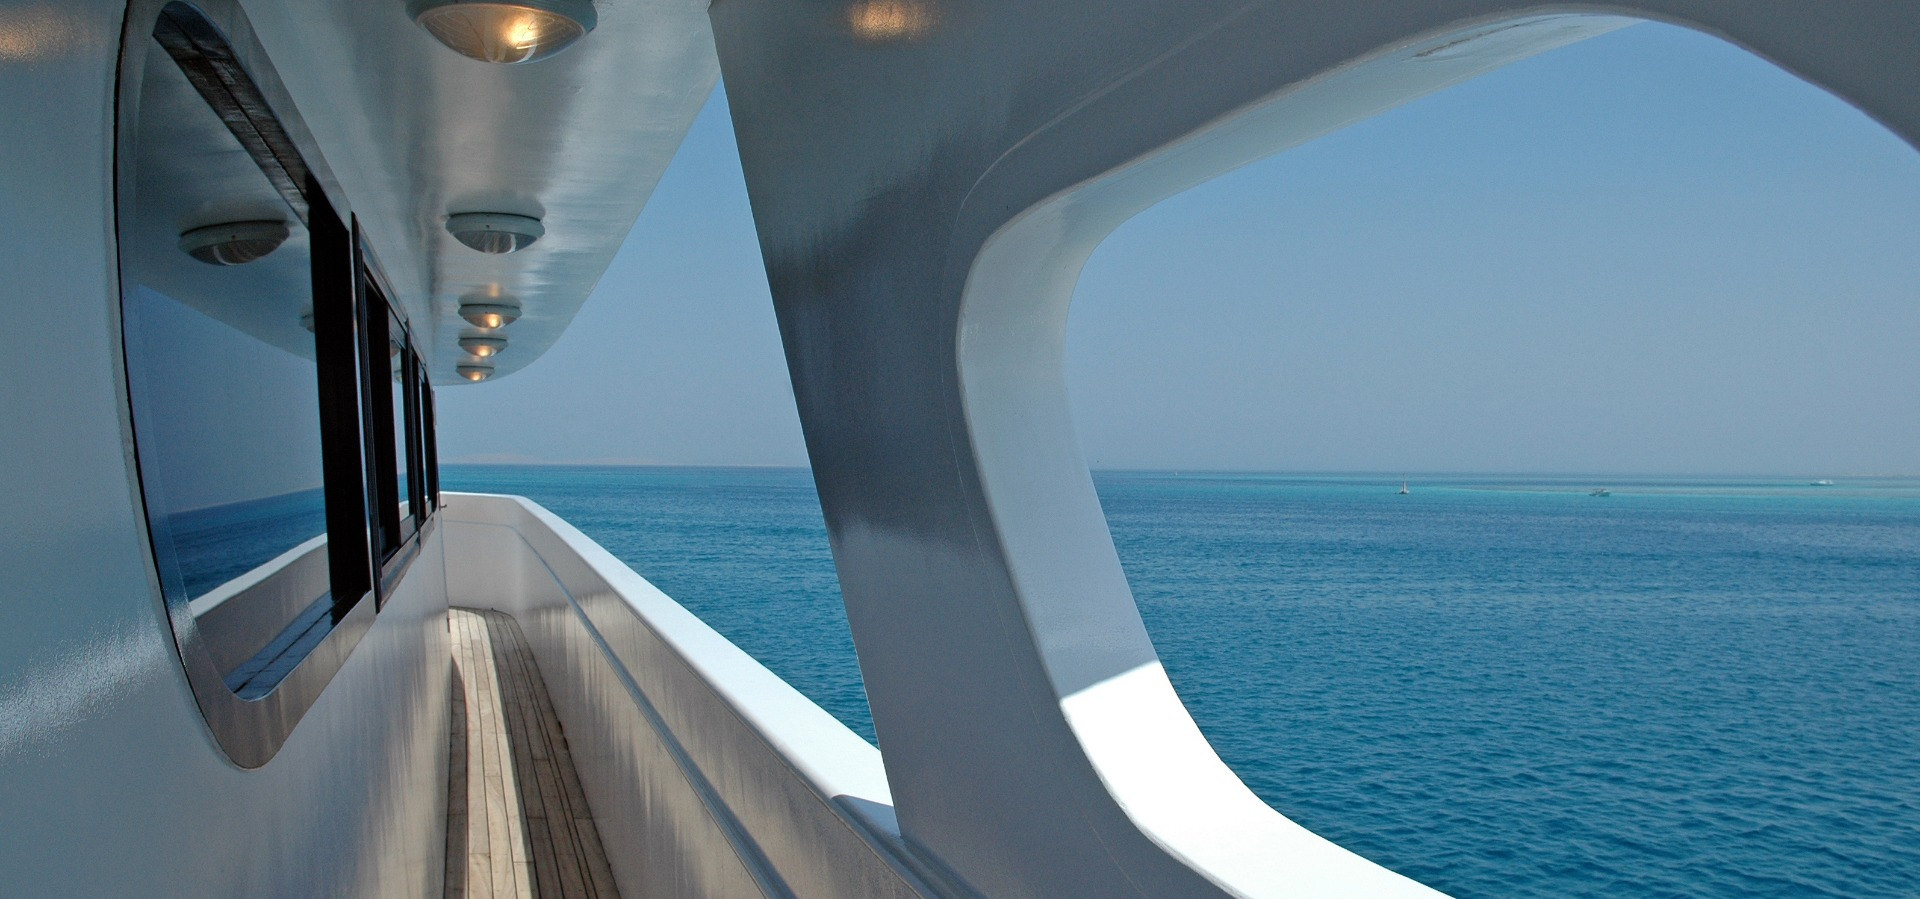 M/Y blue Horizon liveaboard diving starboard walkway